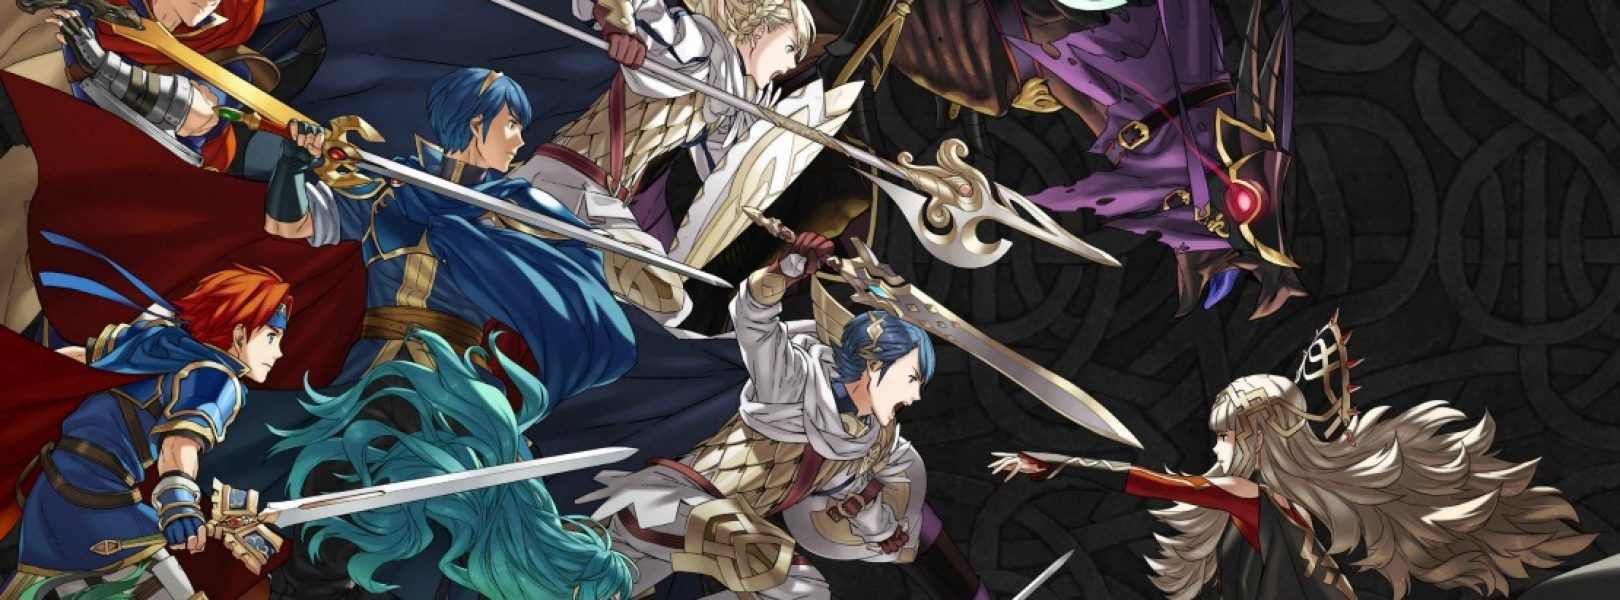 Fire emblem heroes is out today on android and ios while